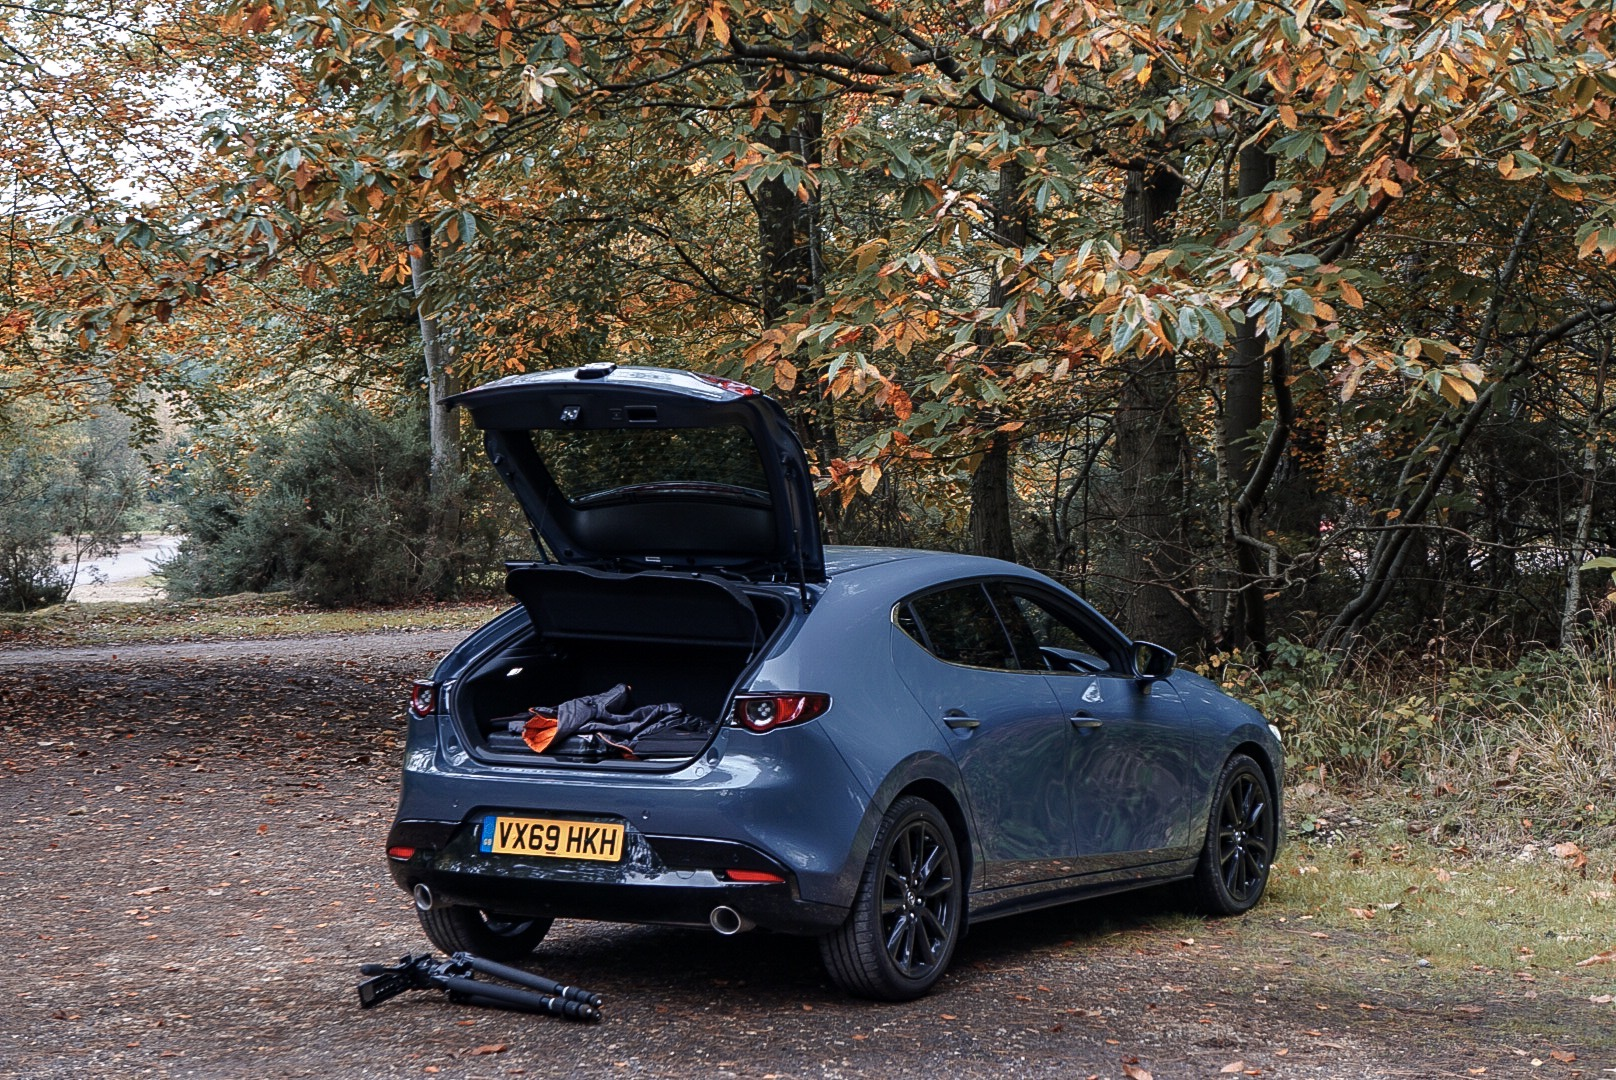 The Mazda's large boot means it's a practical option